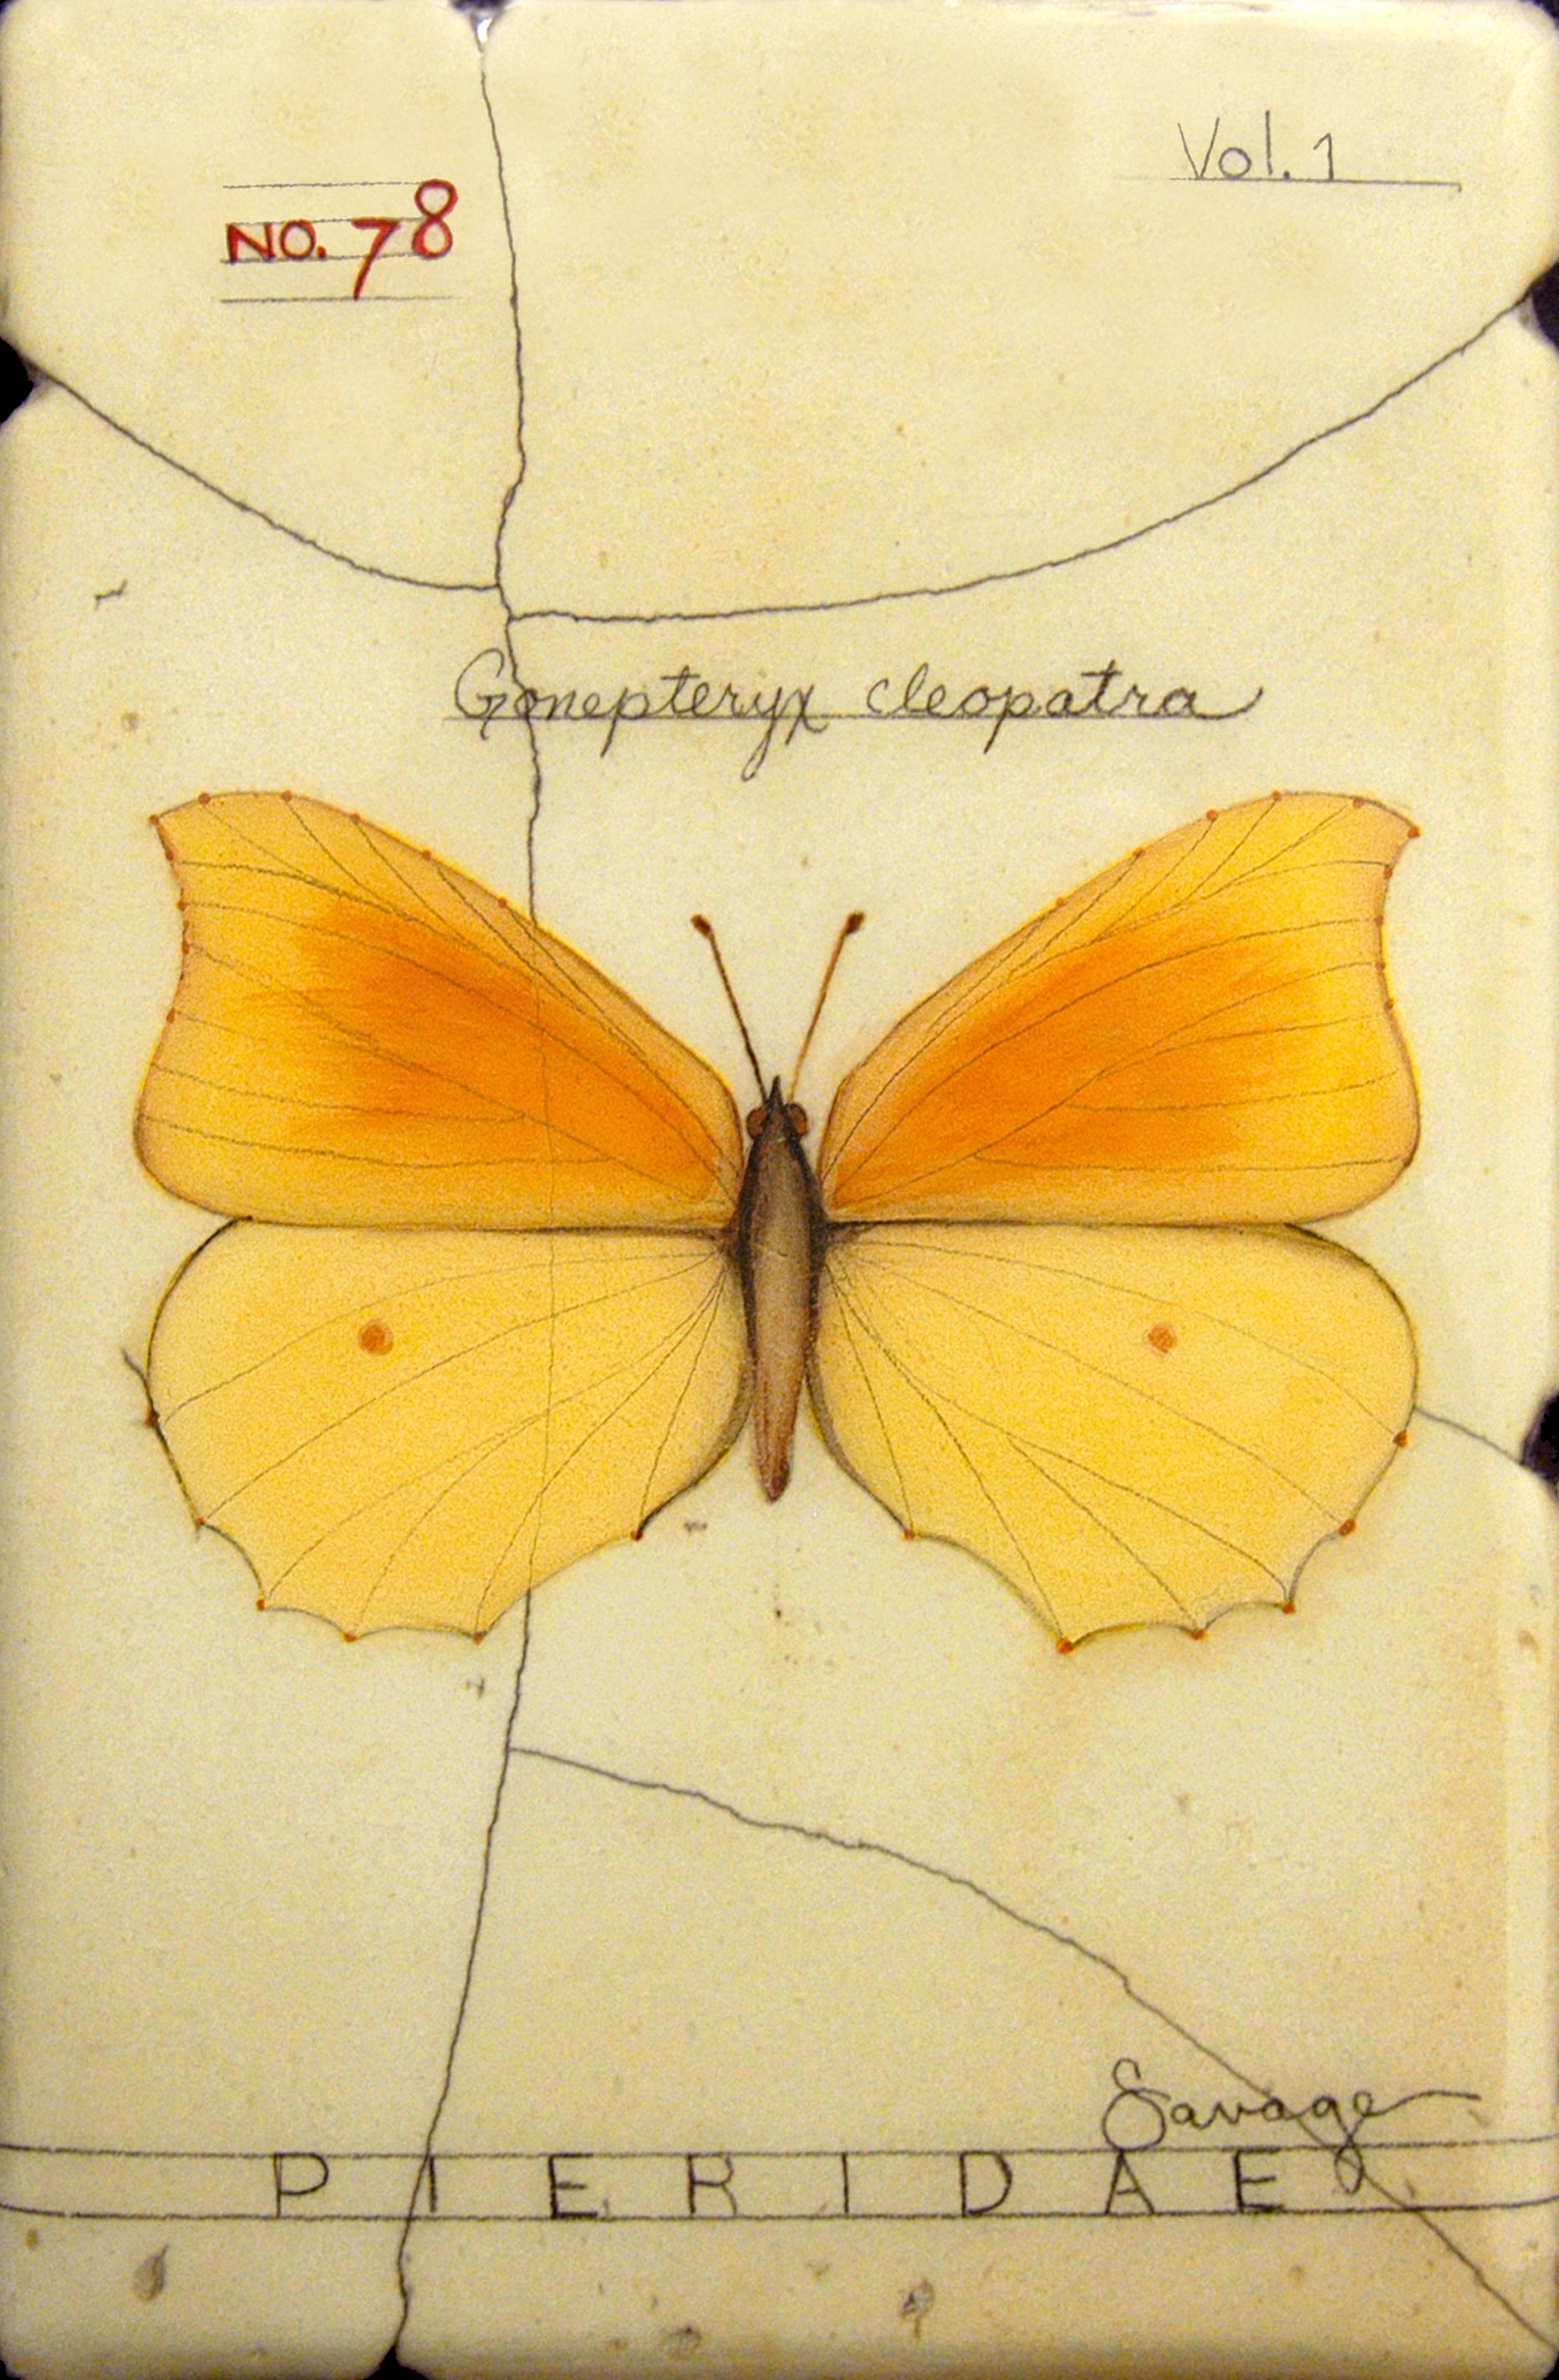 No. 78 Cleopatra Butterfly